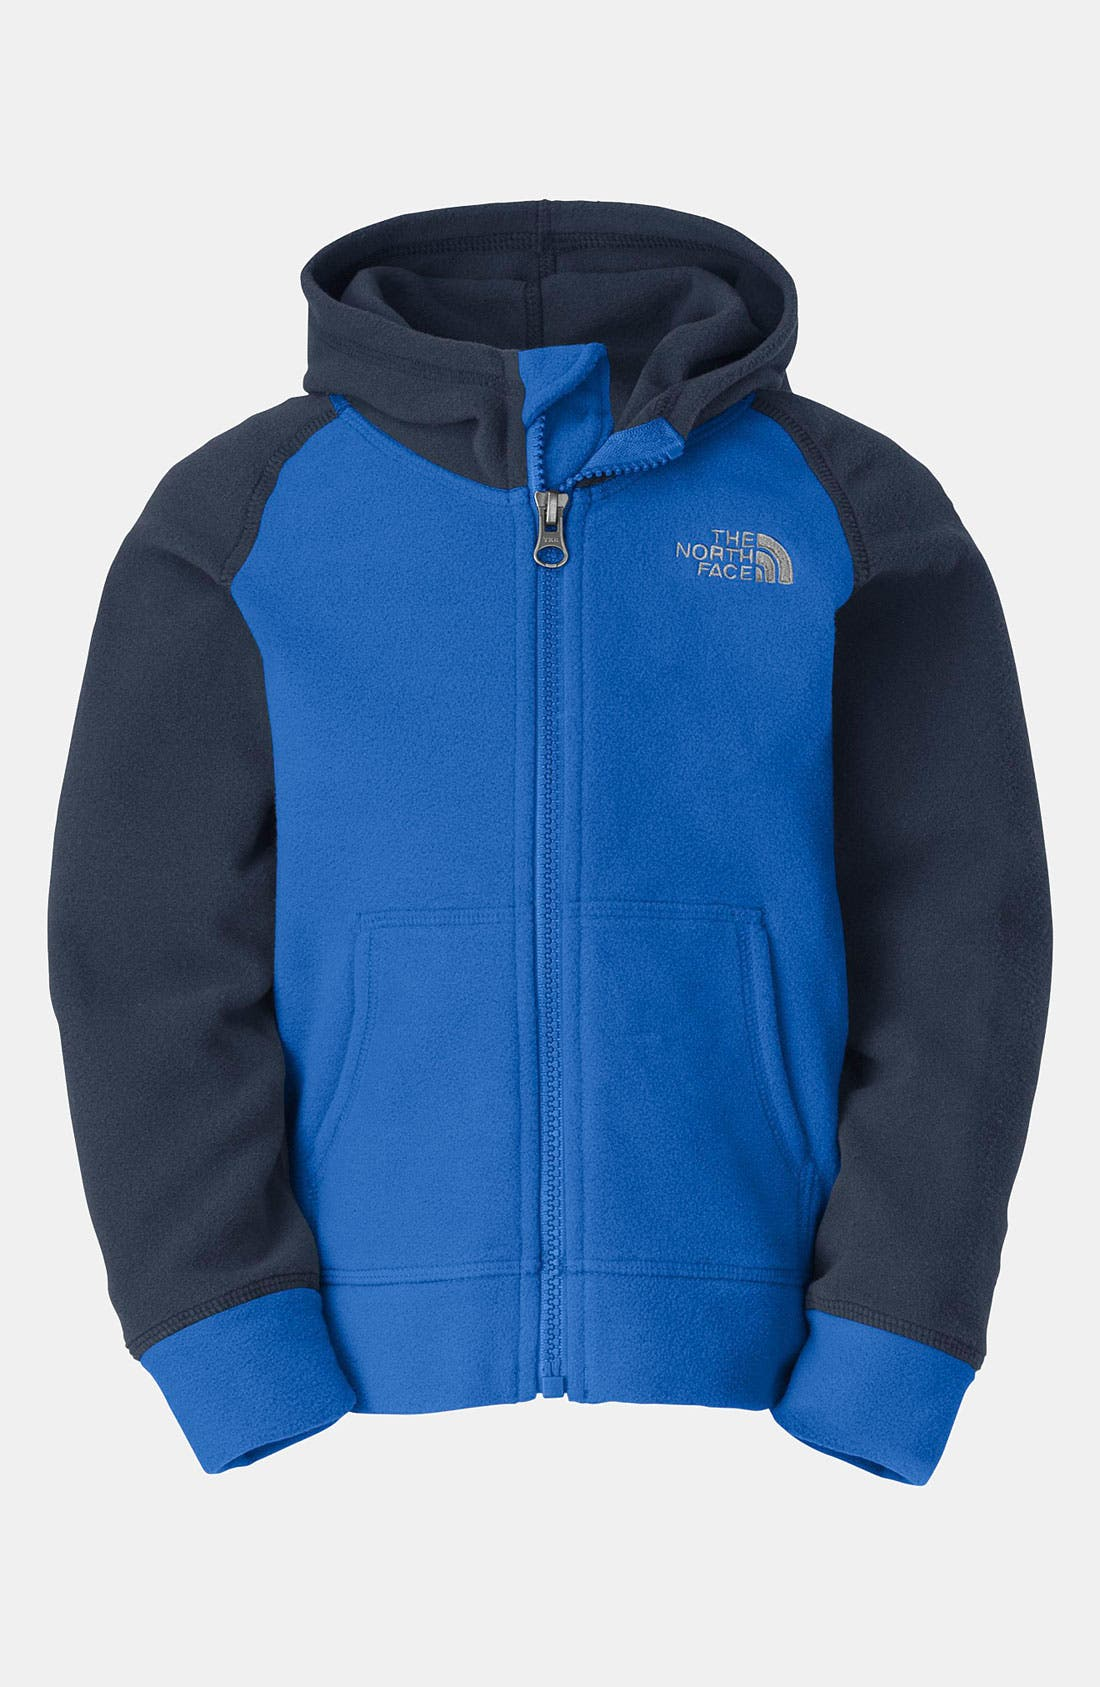 Alternate Image 1 Selected - The North Face 'Glacier' Hoodie (Toddler)